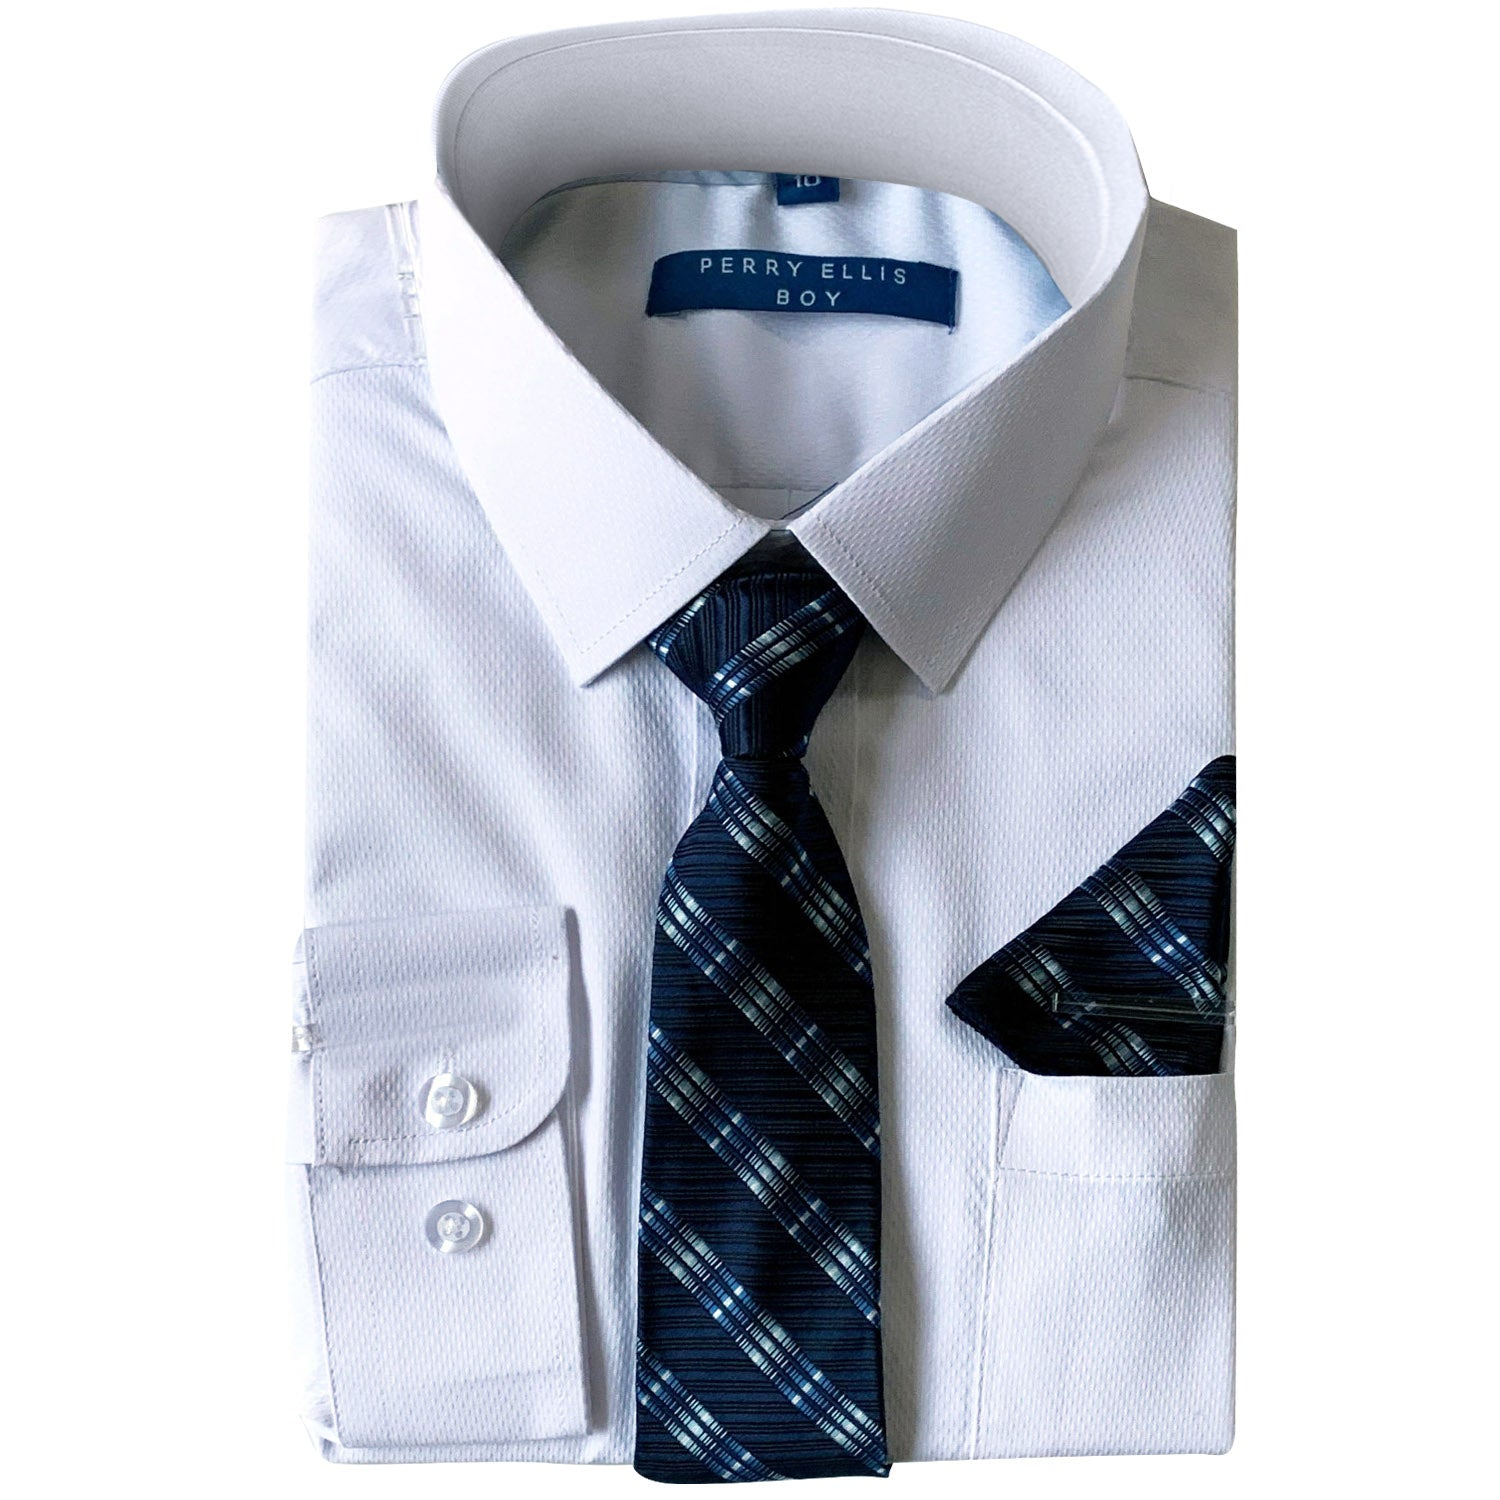 Perry Ellis Boys Dress Shirts w R Blue Tie Solid Shirts w Patterned Tie